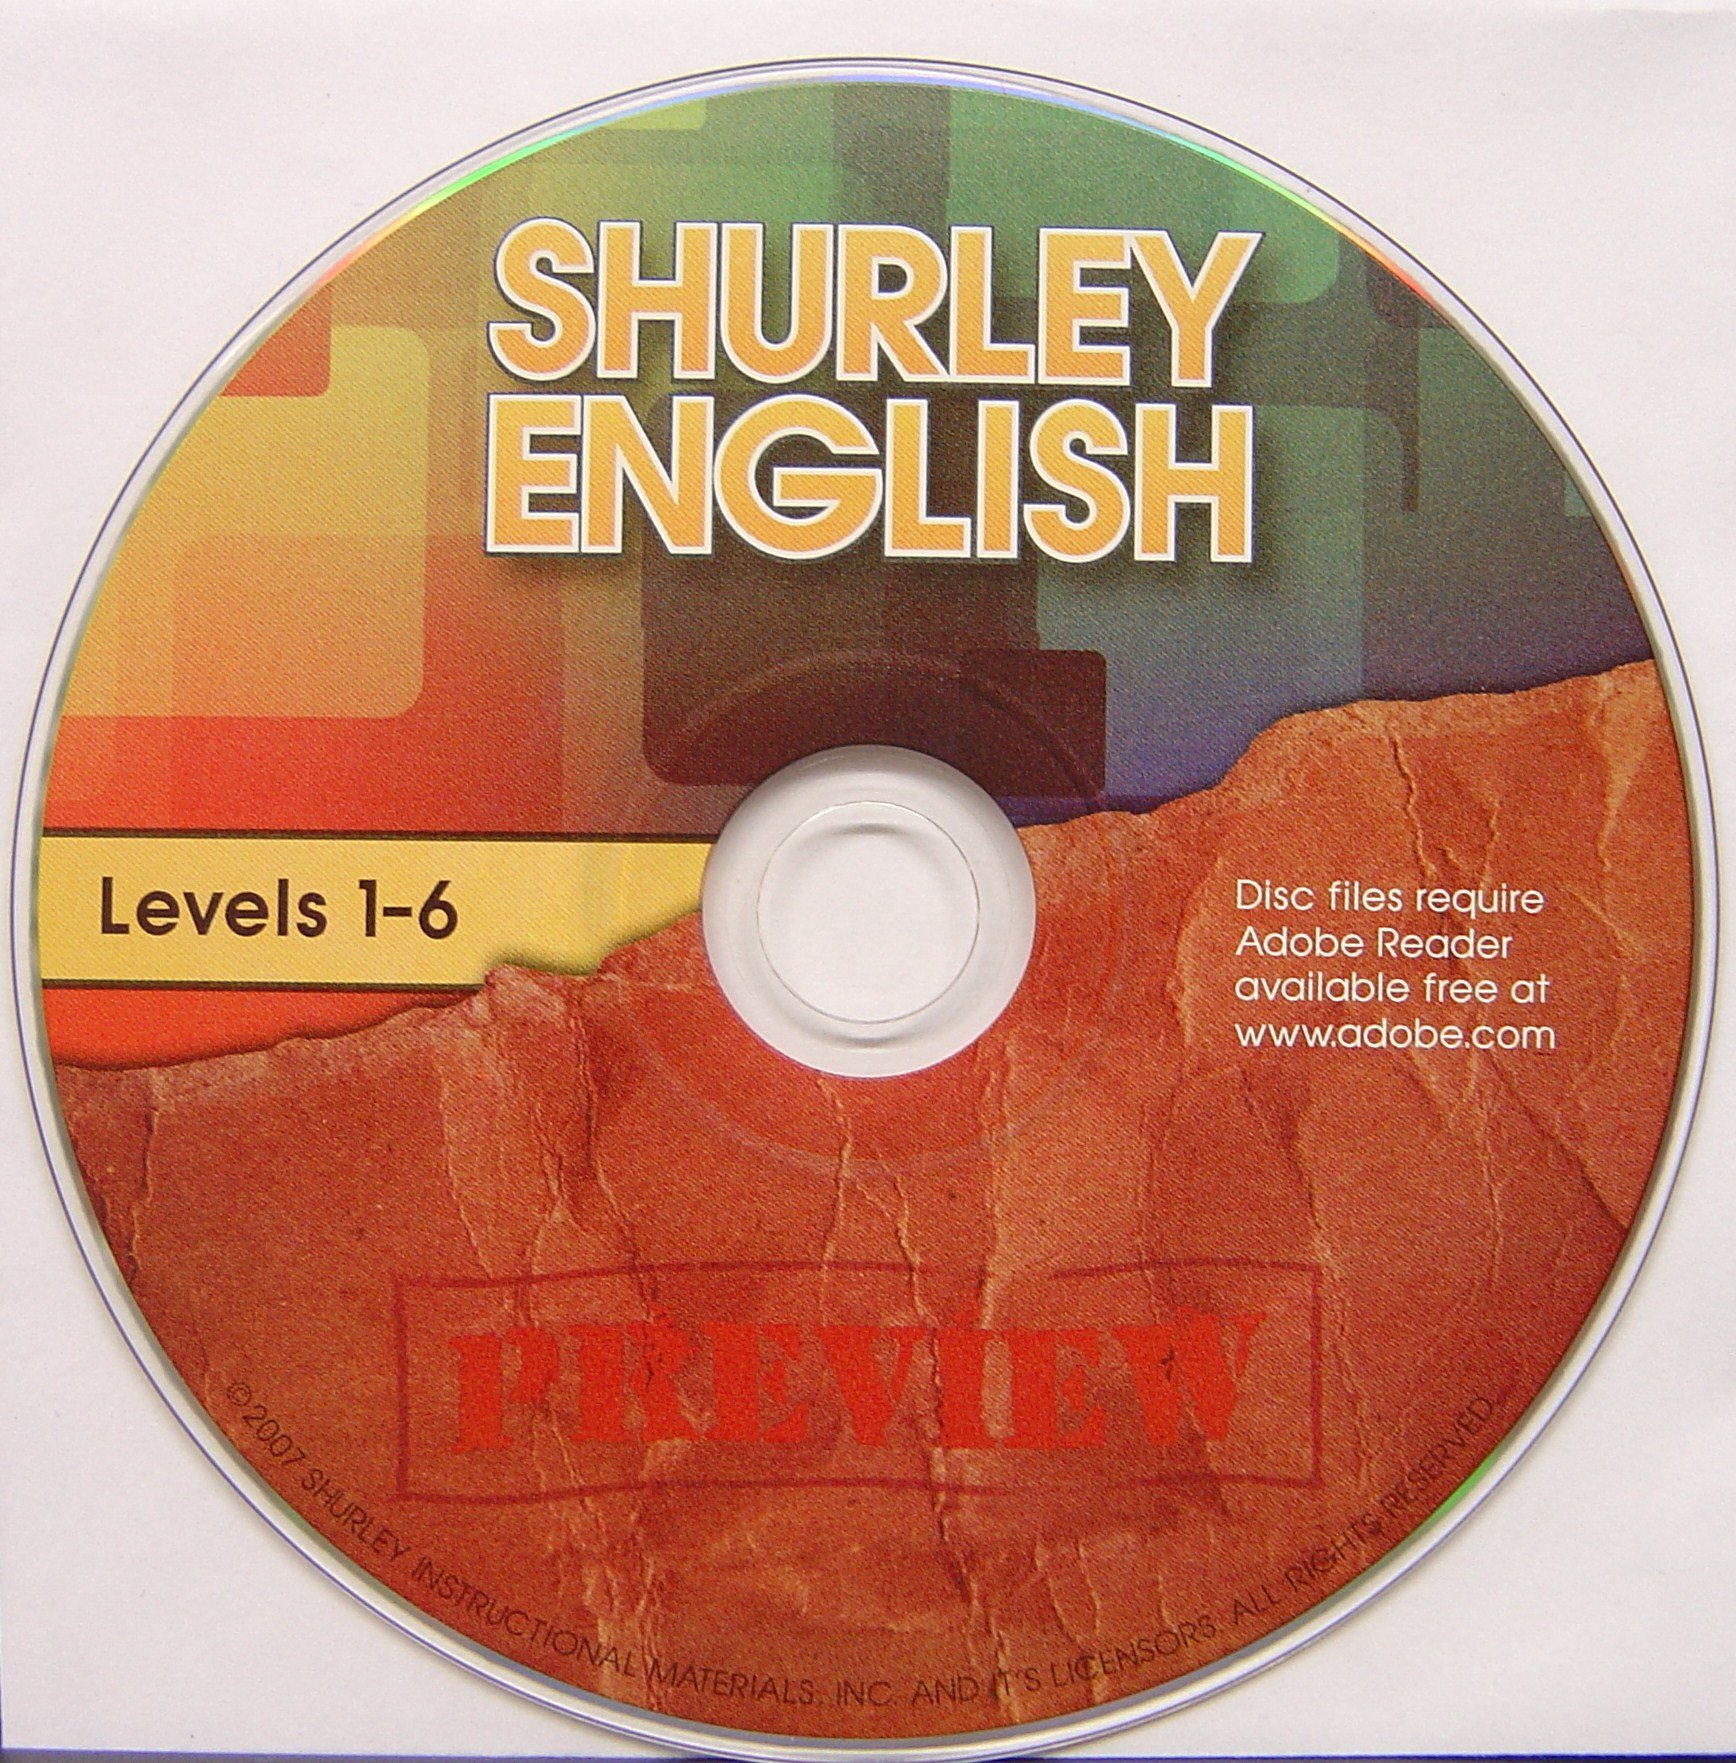 Shurley English Levels 1-6 Preview CD ebook